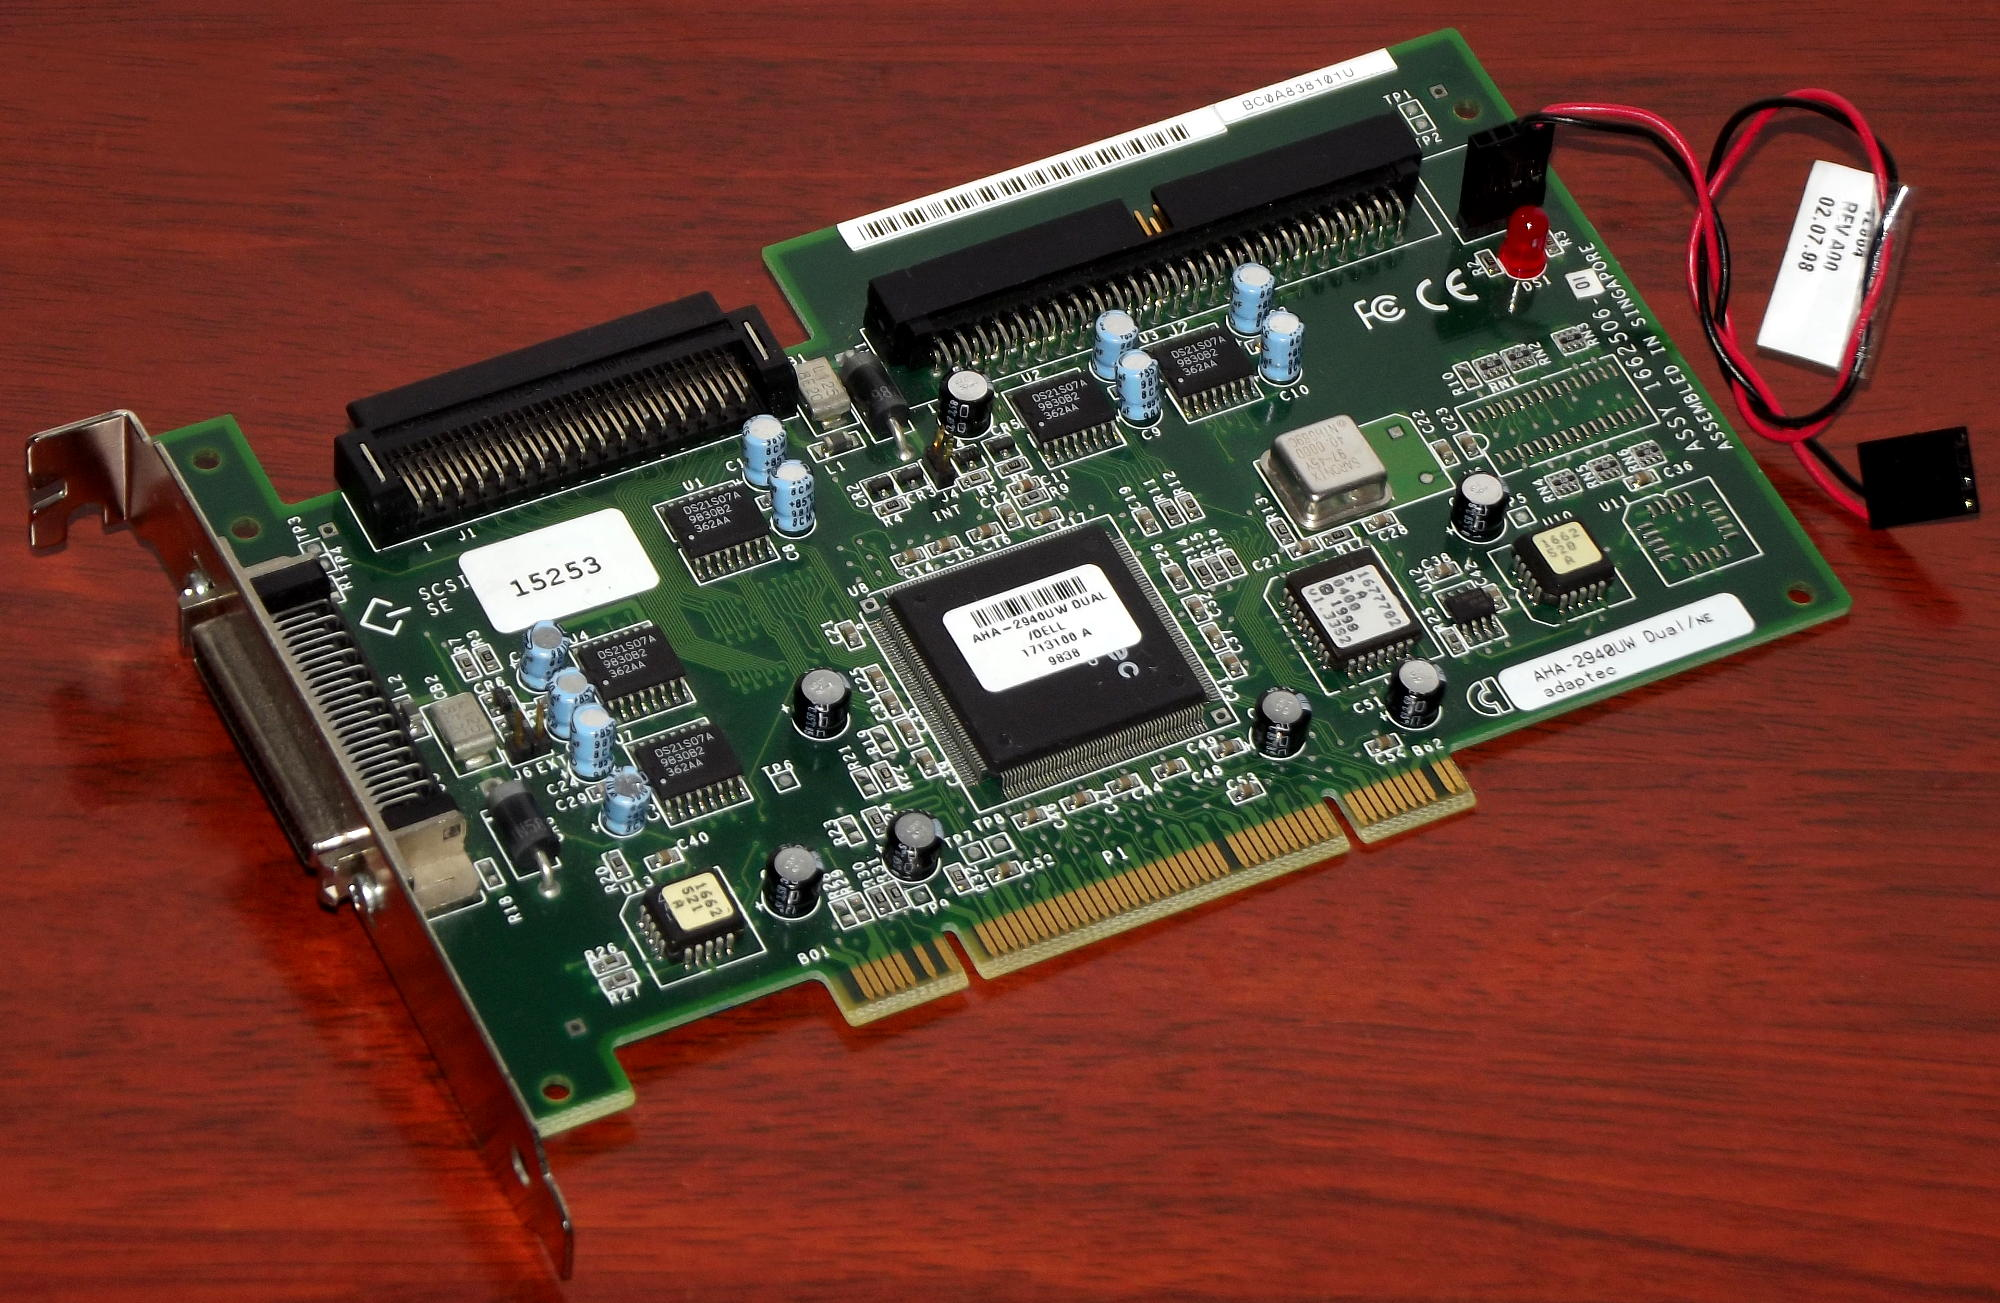 Adaptec AHA-2940UW PCI SCSI Controller - drivers for windows xp